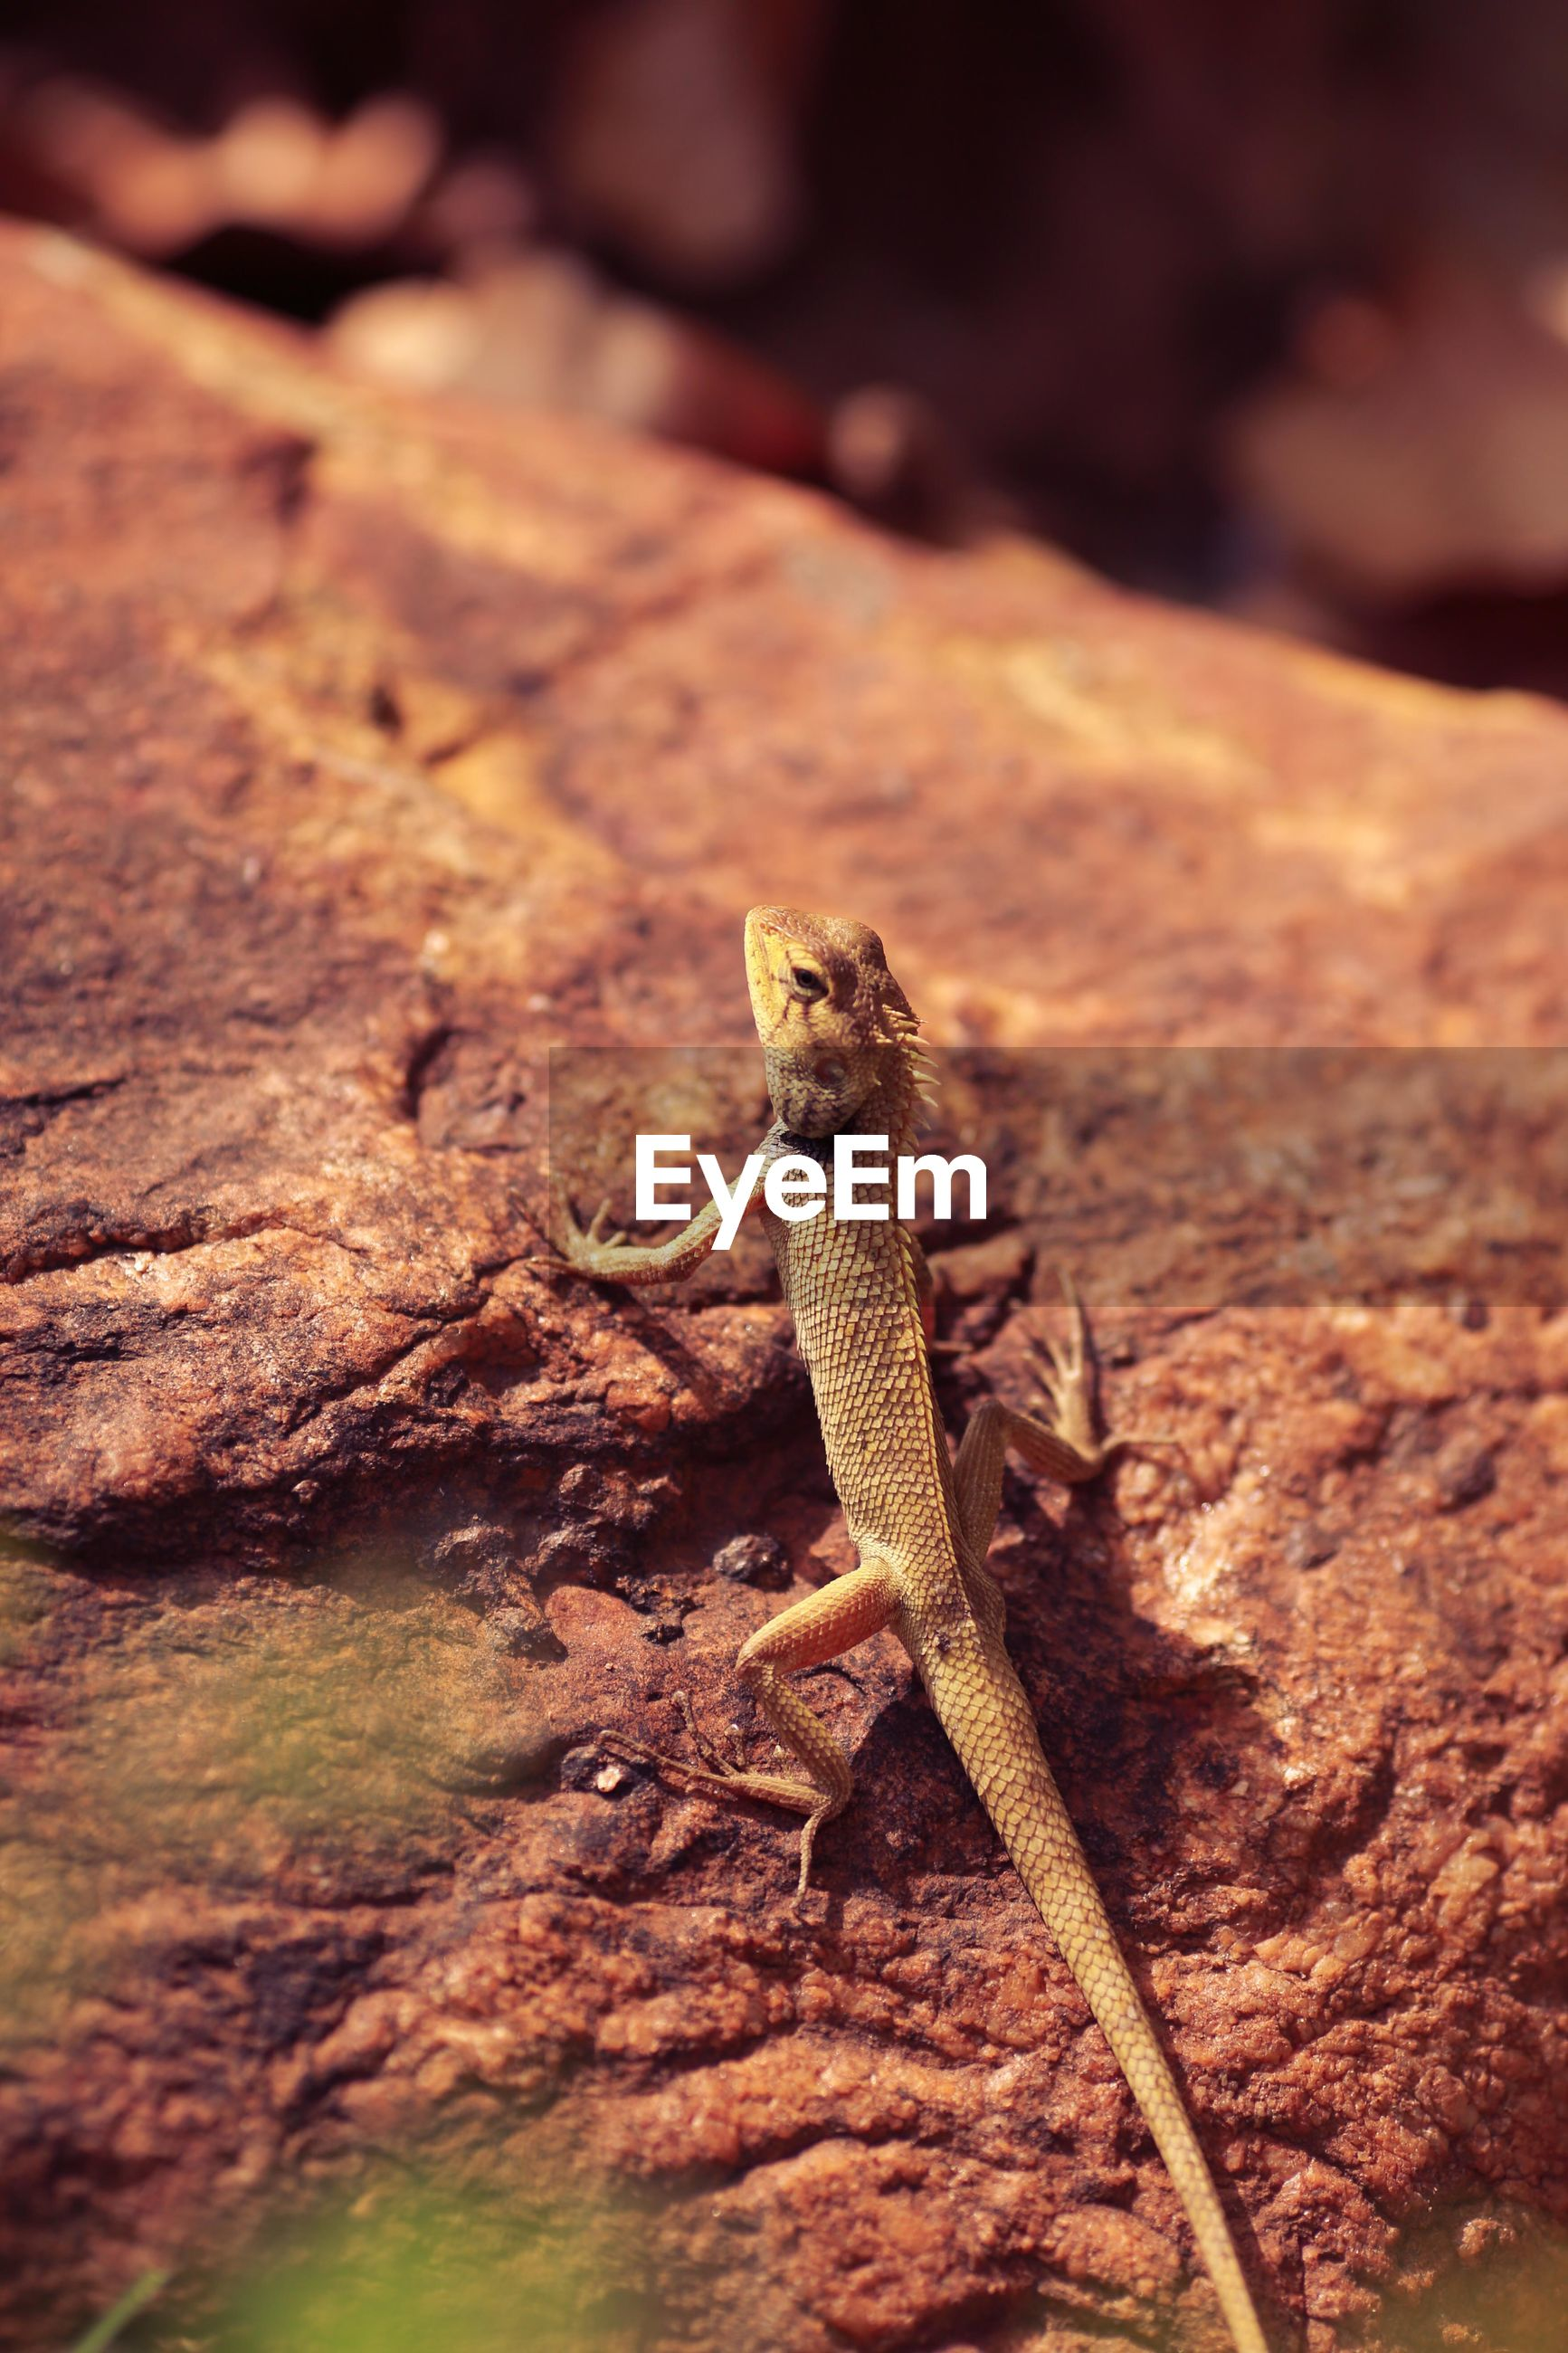 animal themes, one animal, animals in the wild, wildlife, lizard, focus on foreground, reptile, selective focus, full length, rock - object, nature, close-up, outdoors, side view, no people, day, sunlight, zoology, wood - material, squirrel